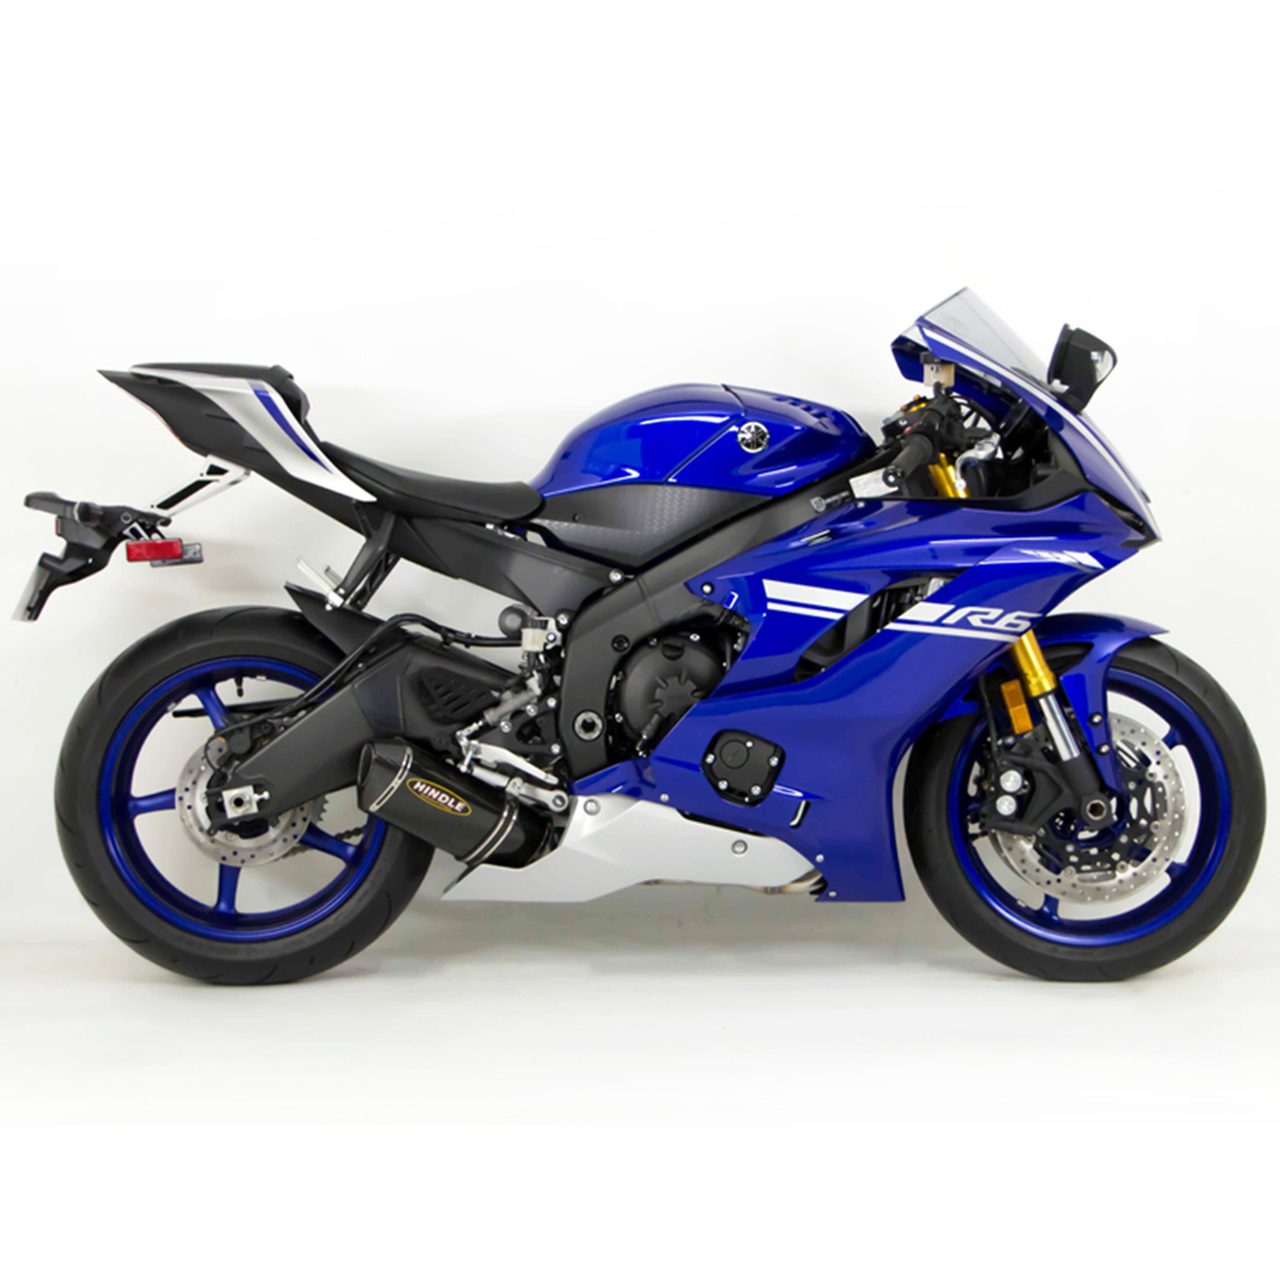 hight resolution of 06 yamaha r6 wiring diagram wiring library r6 track bike wiring diagram wiring diagram 2000 r6